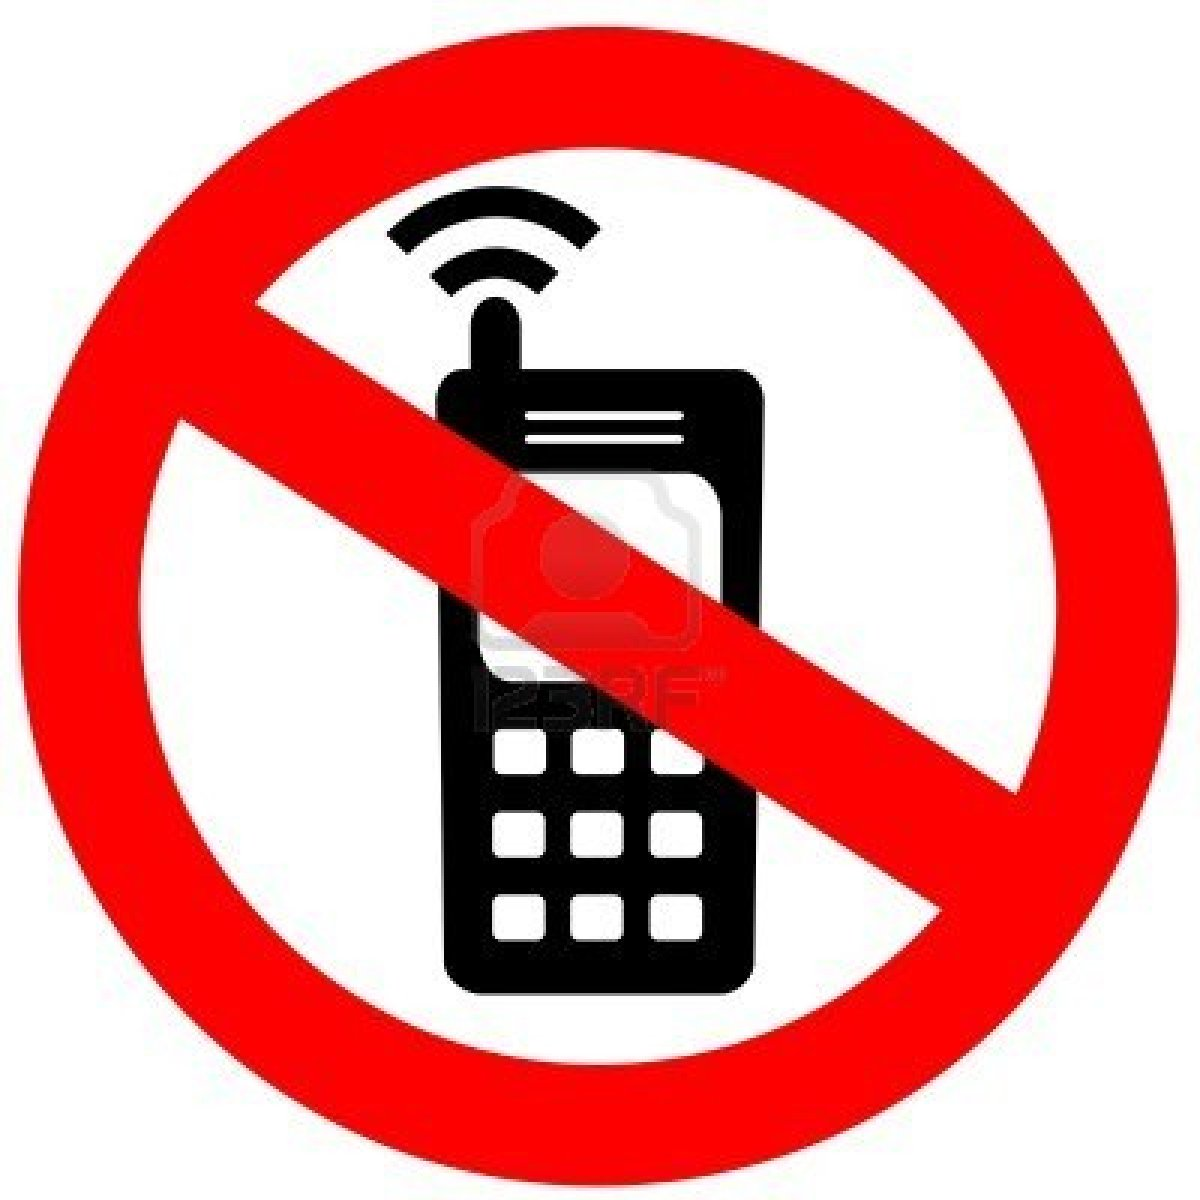 no-cell-phone-sign.jpg